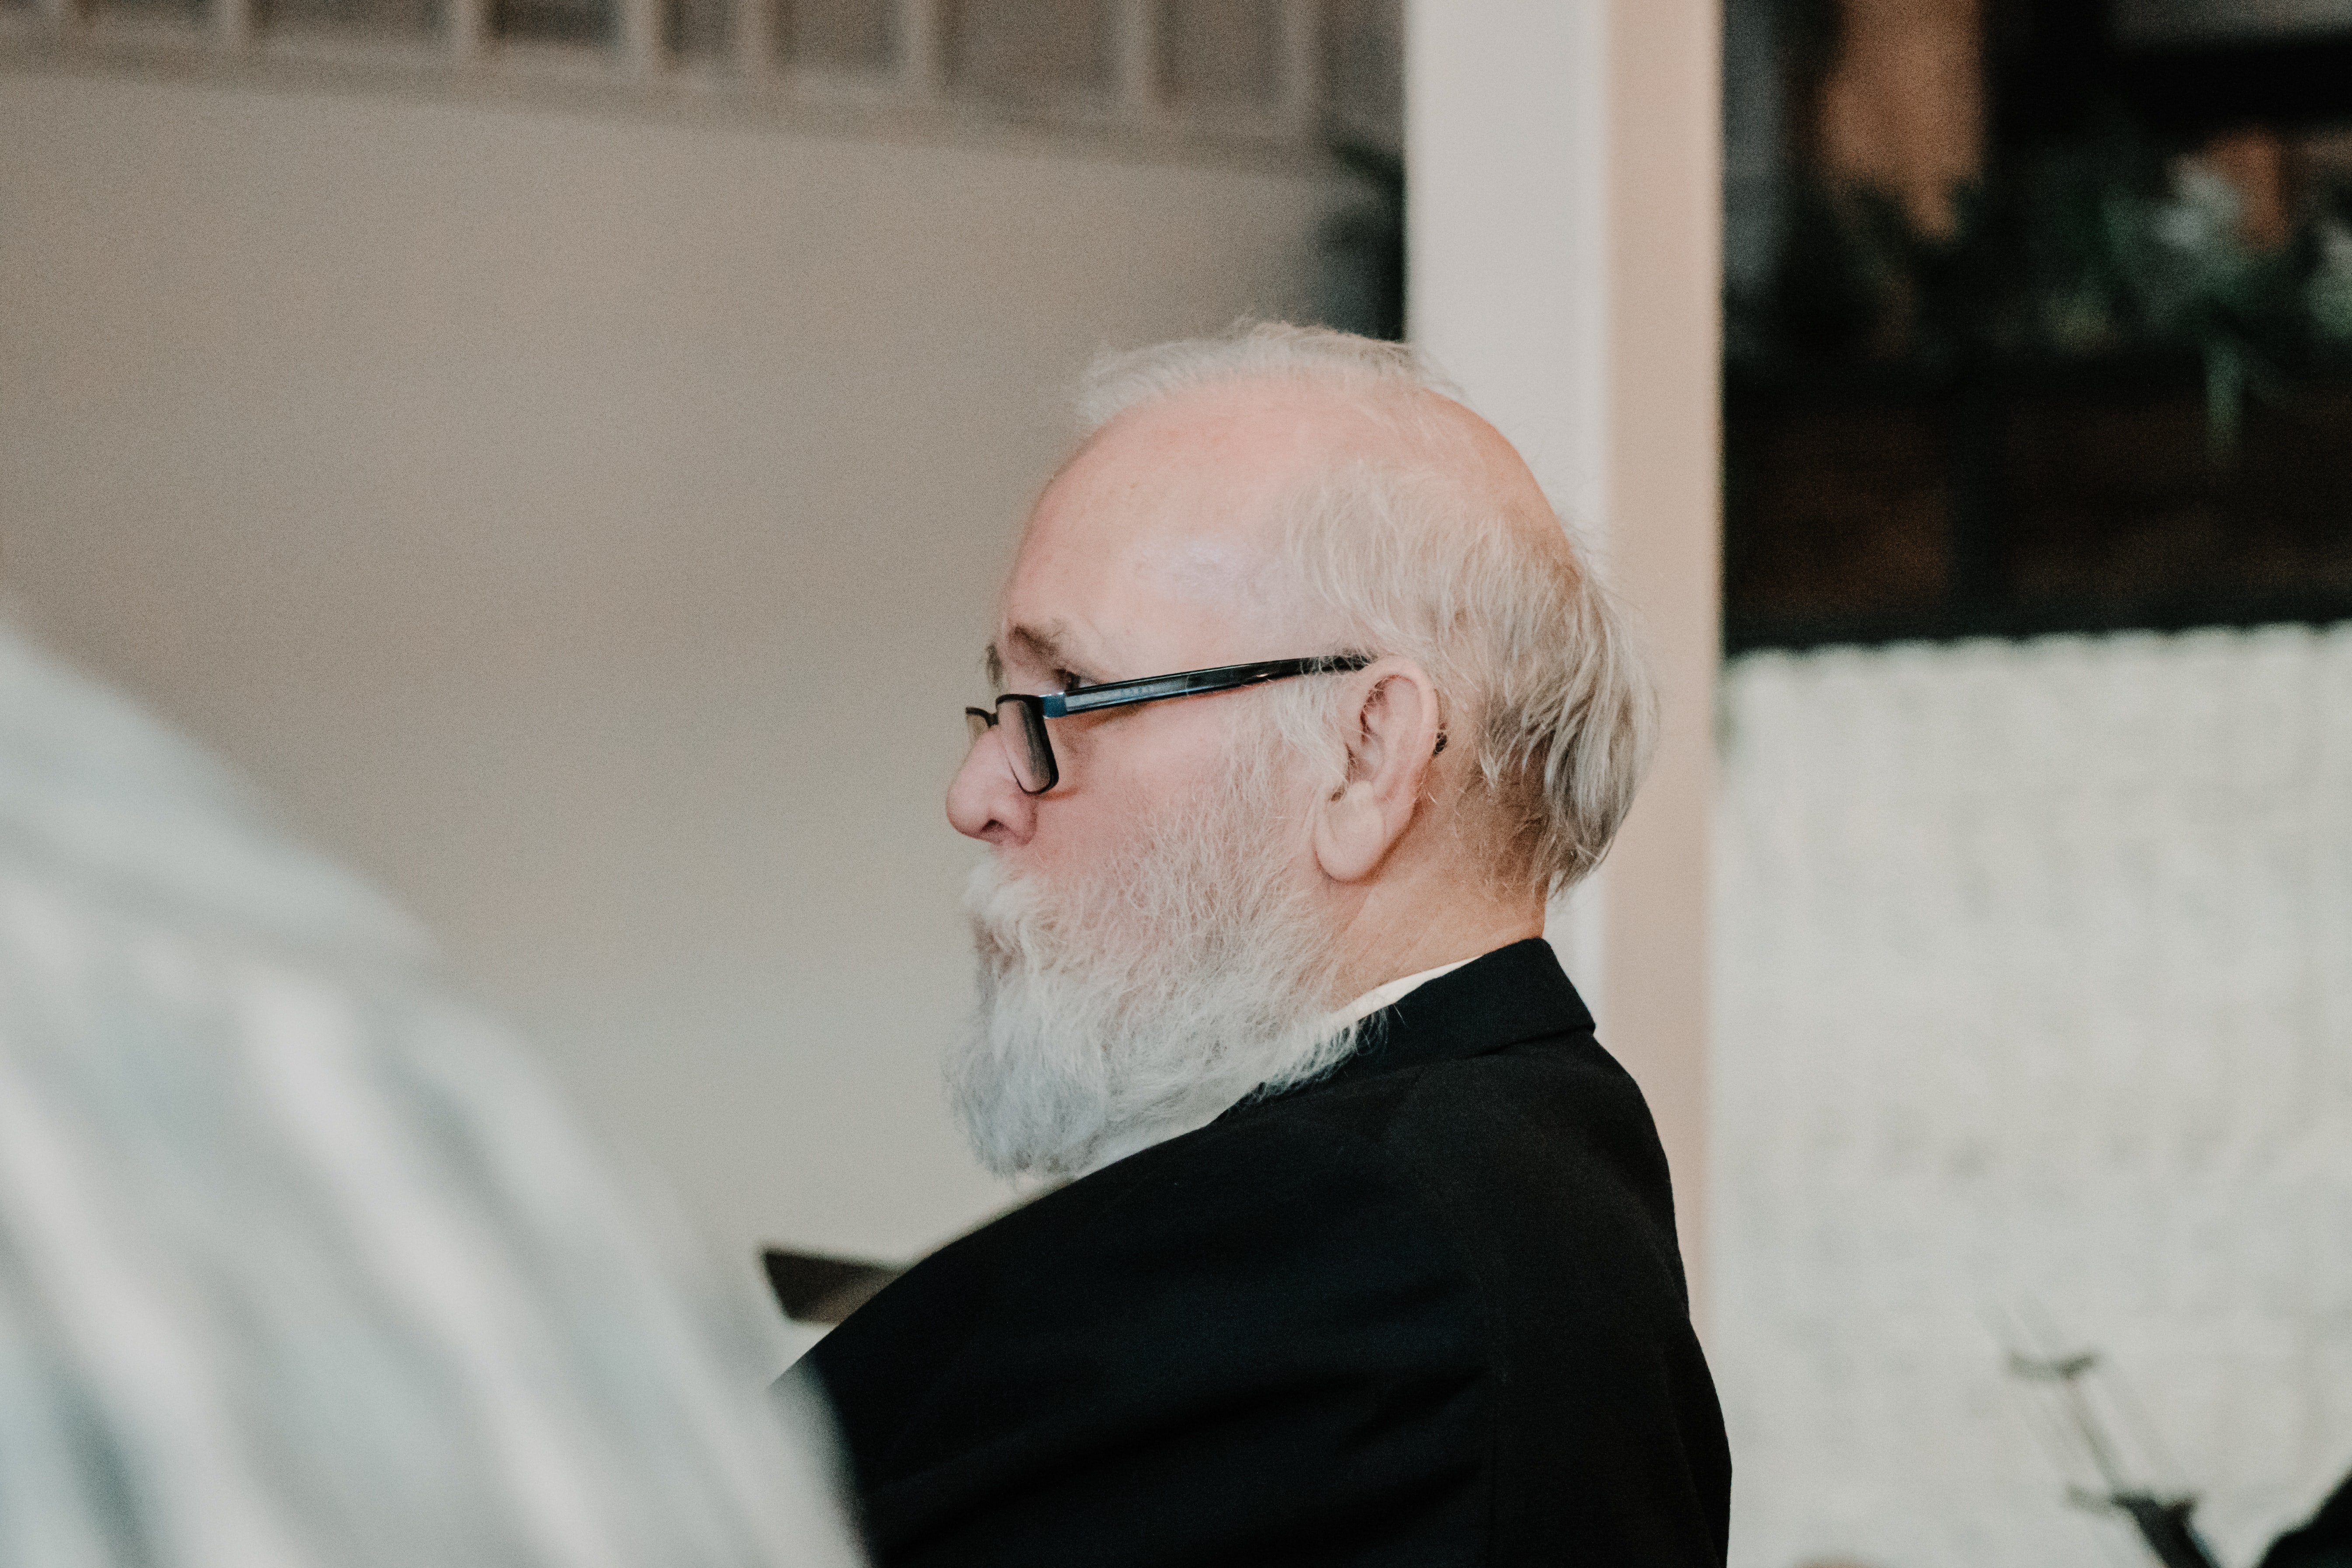 bearded man wearing eyeglasses sitting